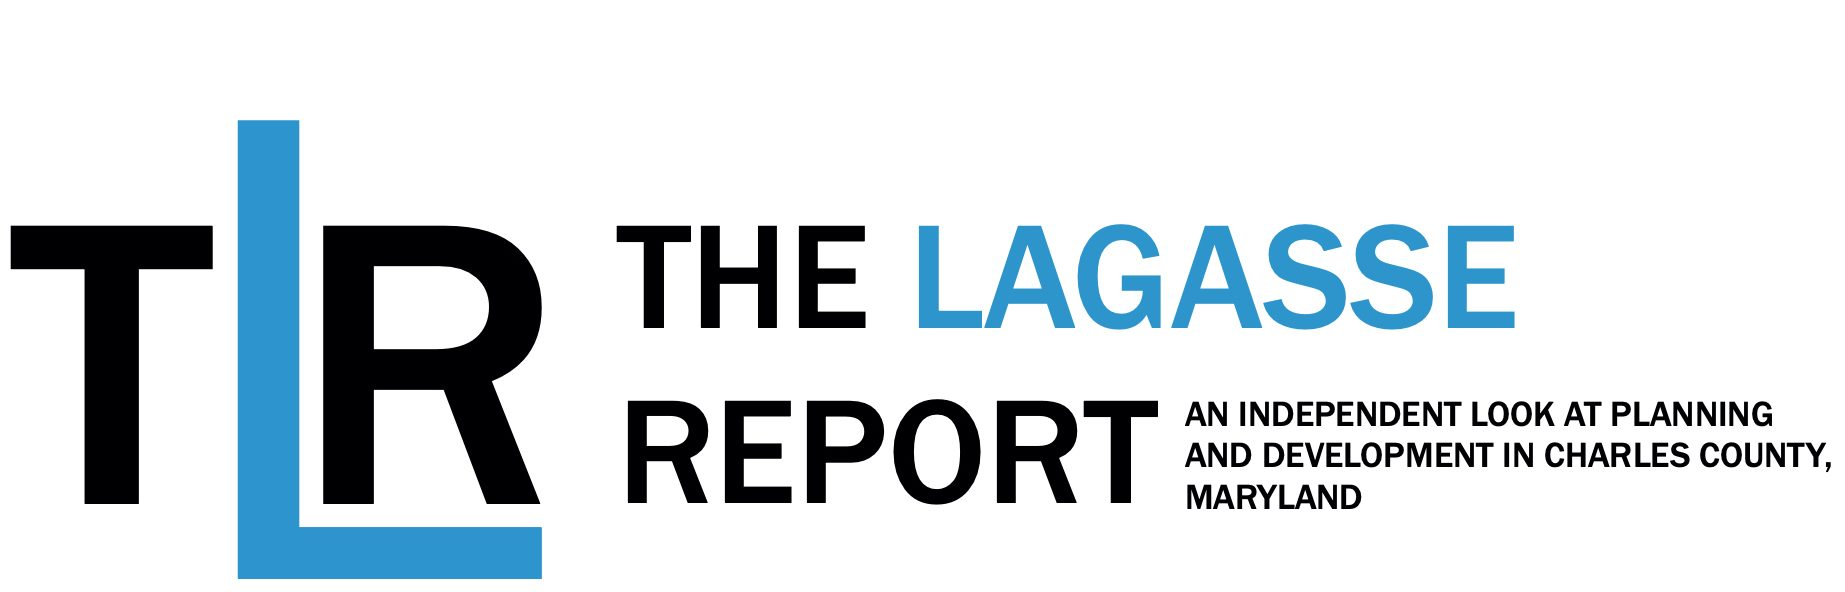 The Lagasse Report